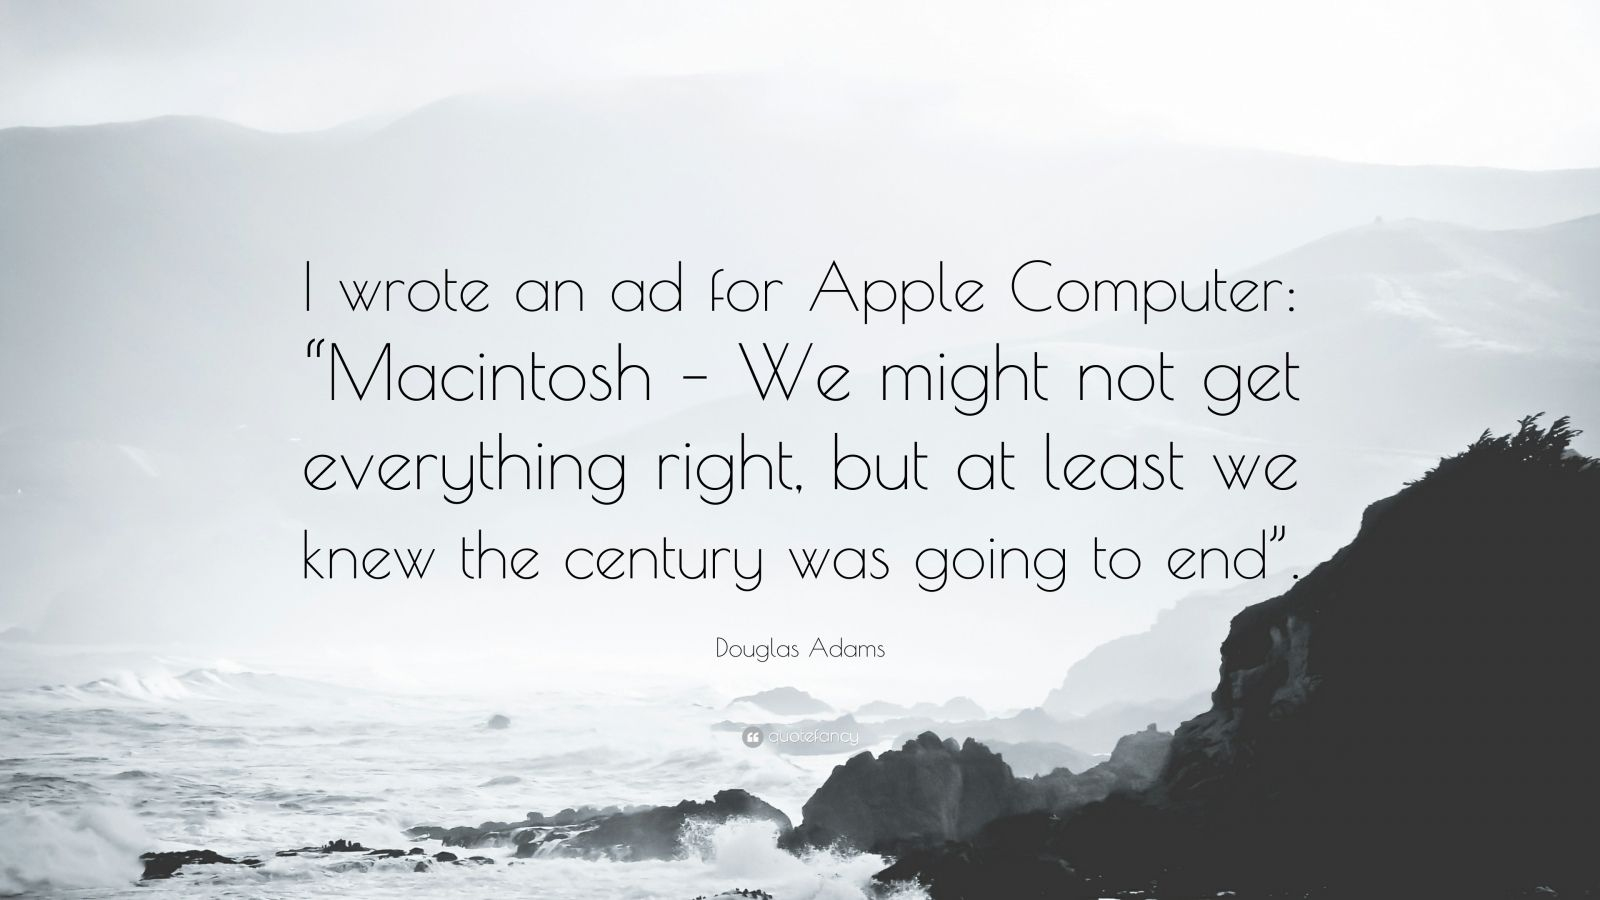 """Douglas Adams Quote: """"I wrote an ad for Apple Computer: """"Macintosh – We might not get everything right, but at least we knew the century was going to end""""."""""""